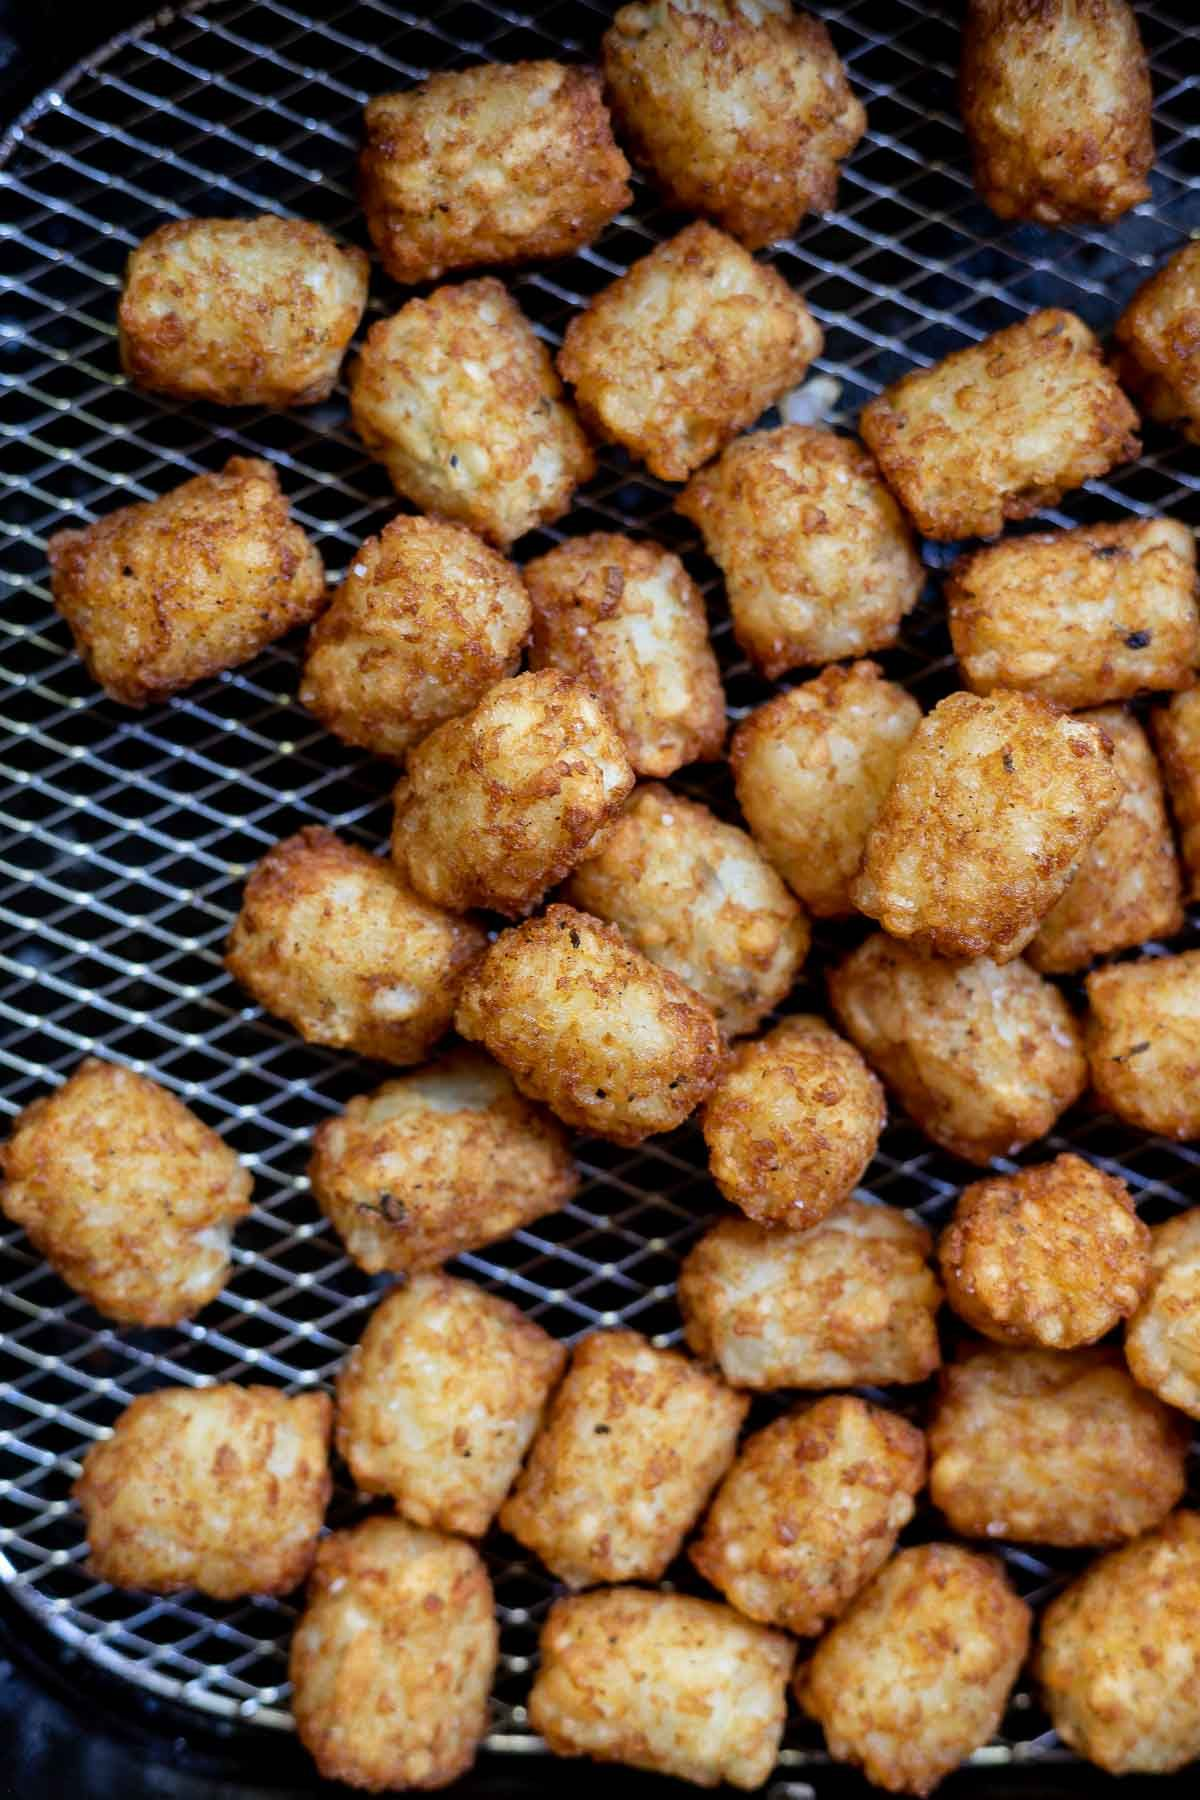 Want perfect tater tots with a crispy outer crust? Make